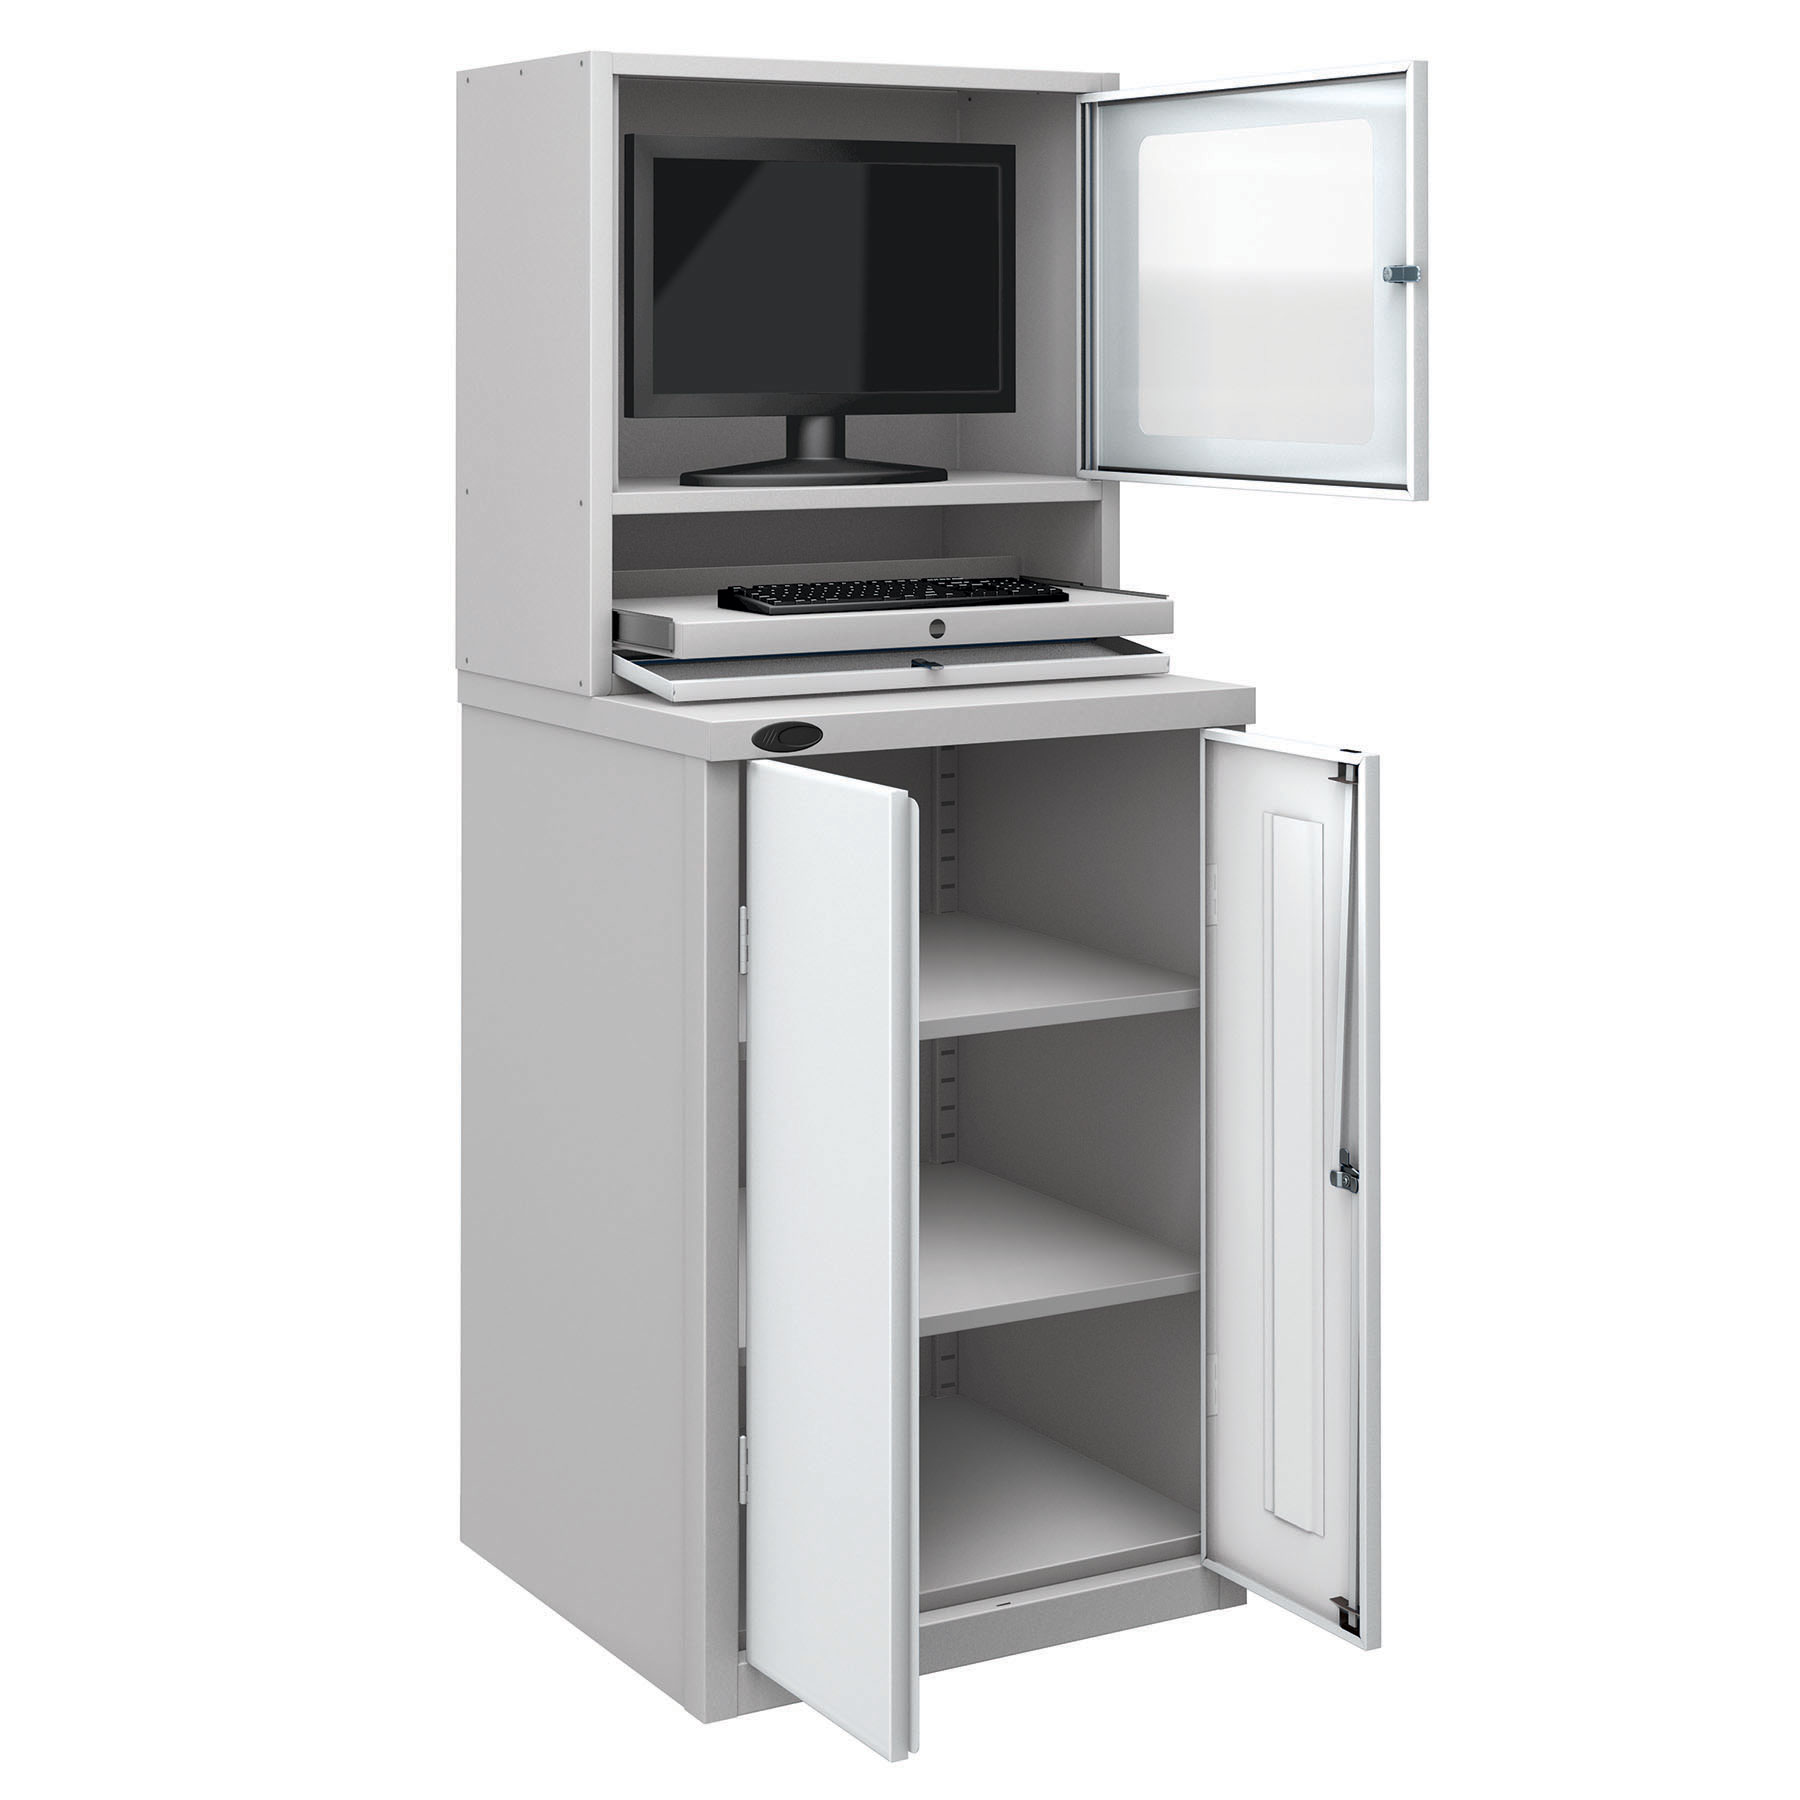 Probe workstation base monitor cupboard white